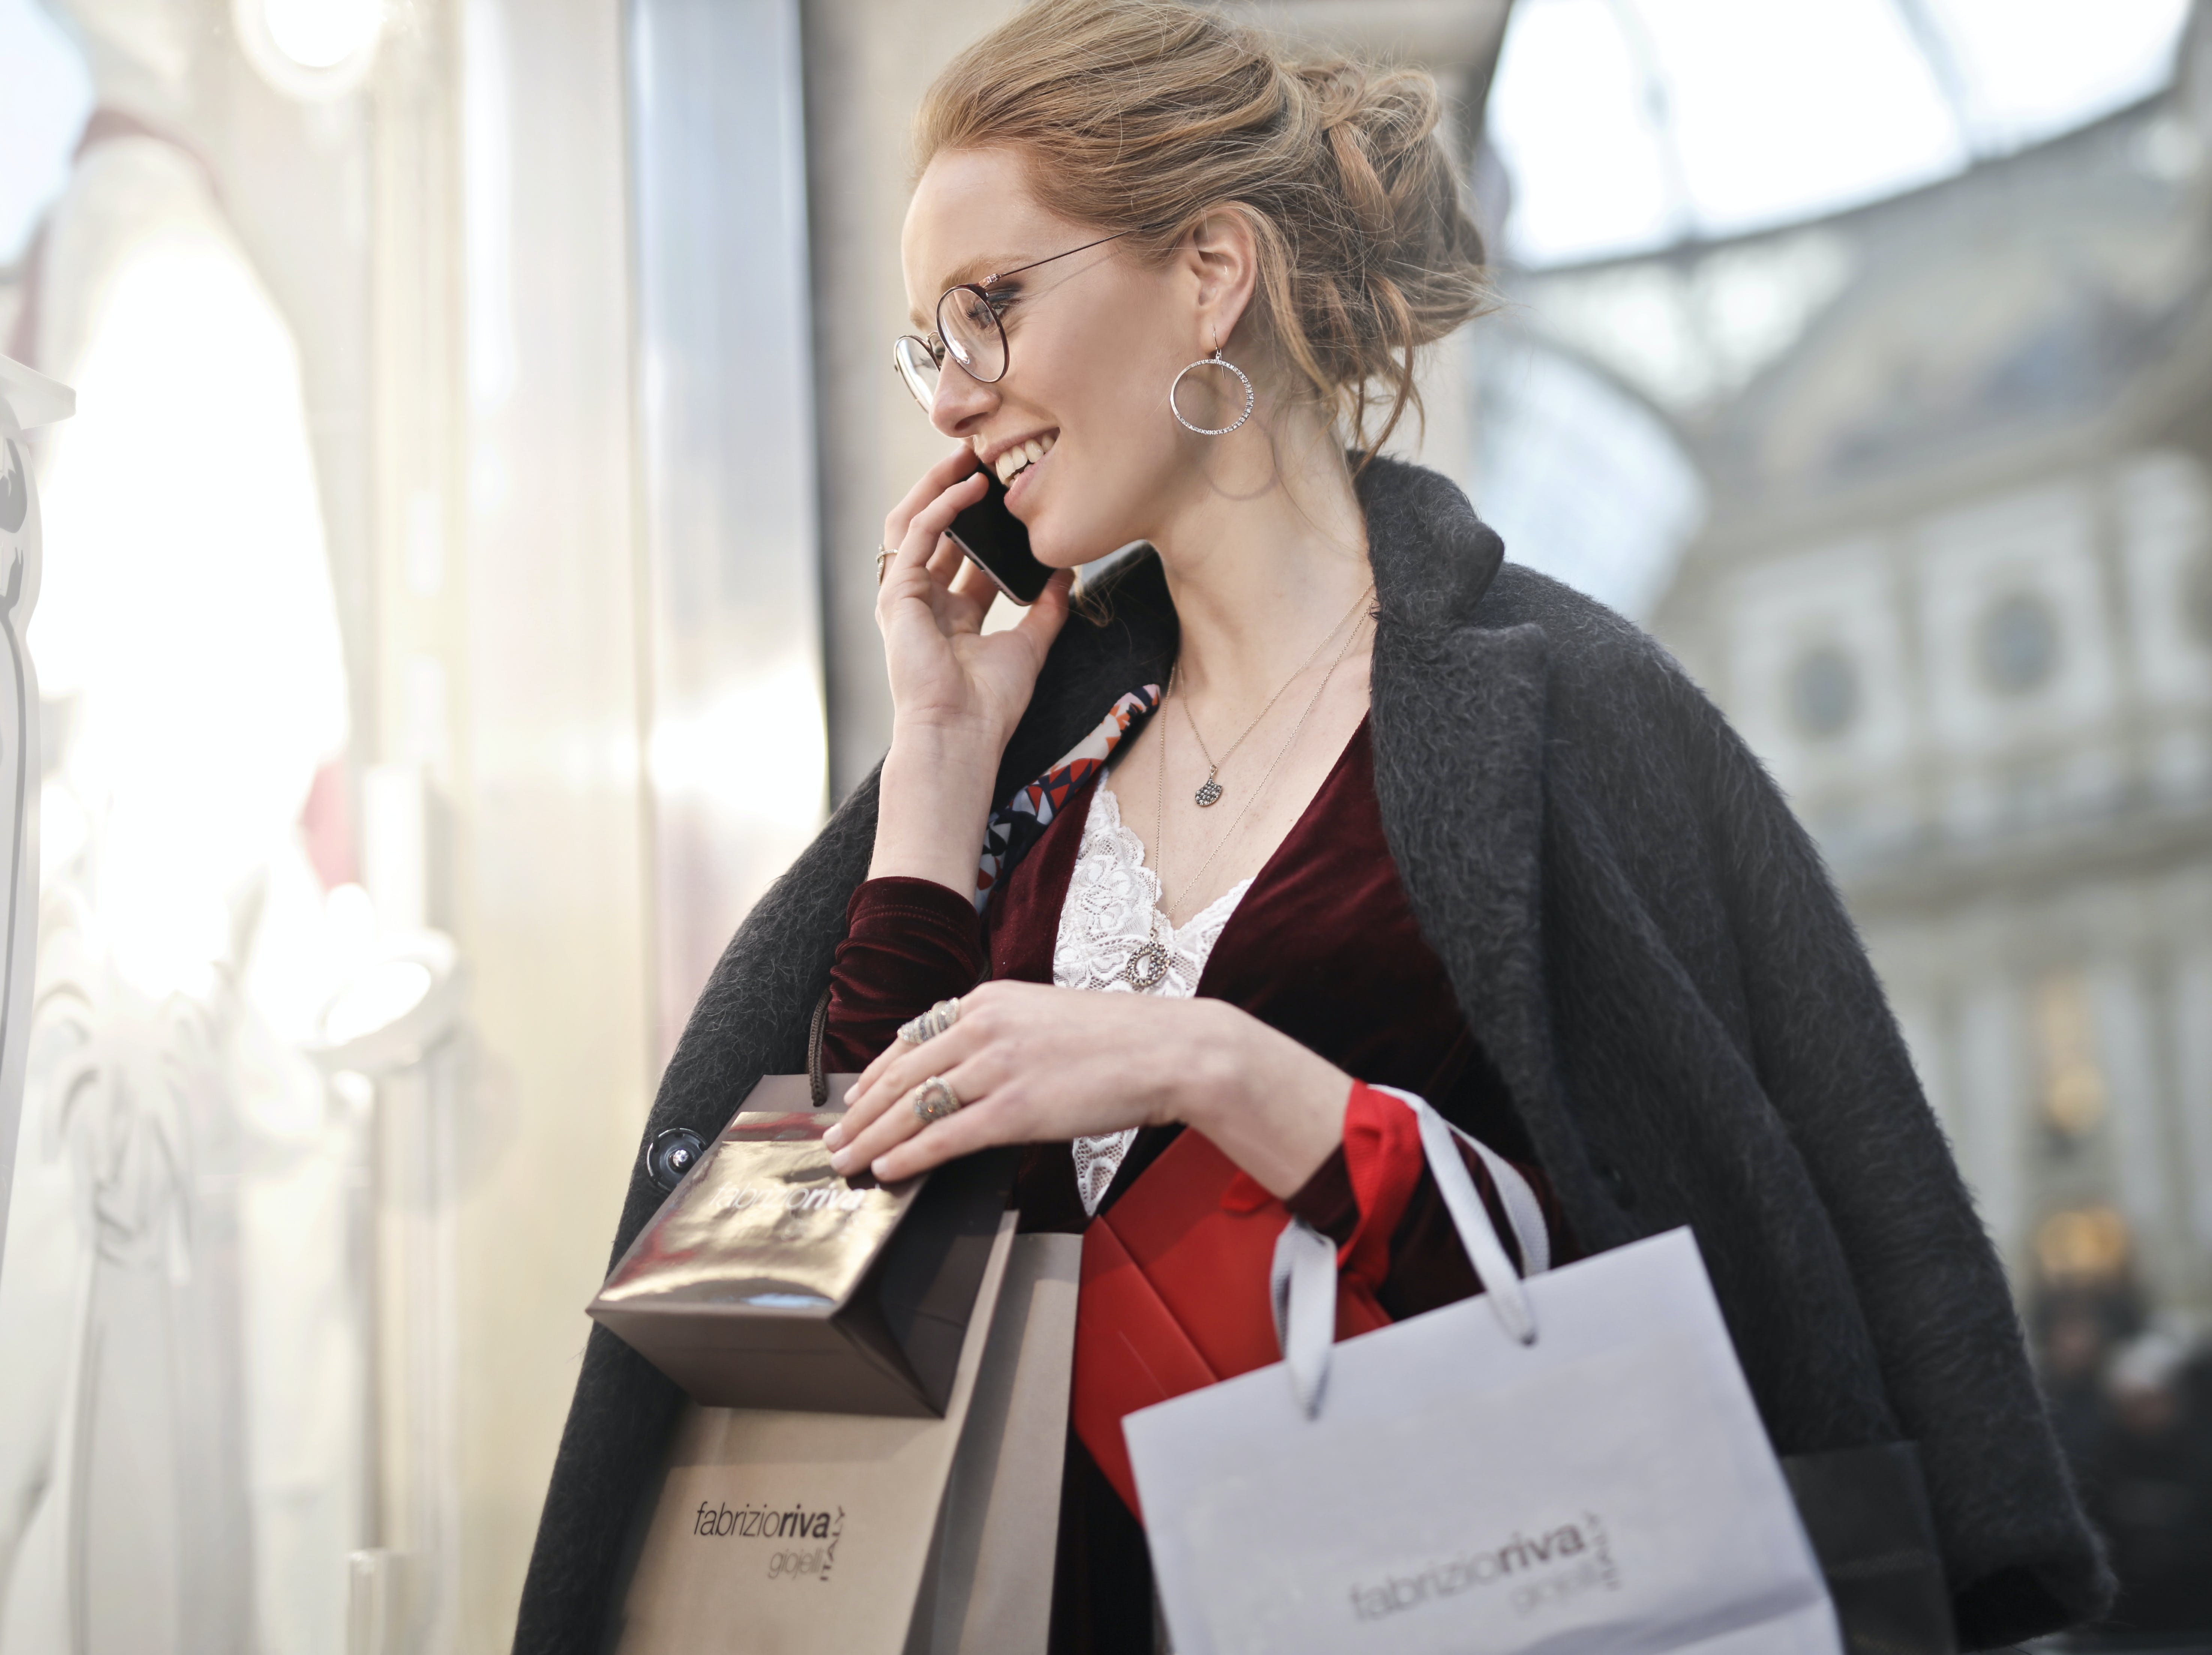 Woman Carrying Paper Bag and Holding Phone